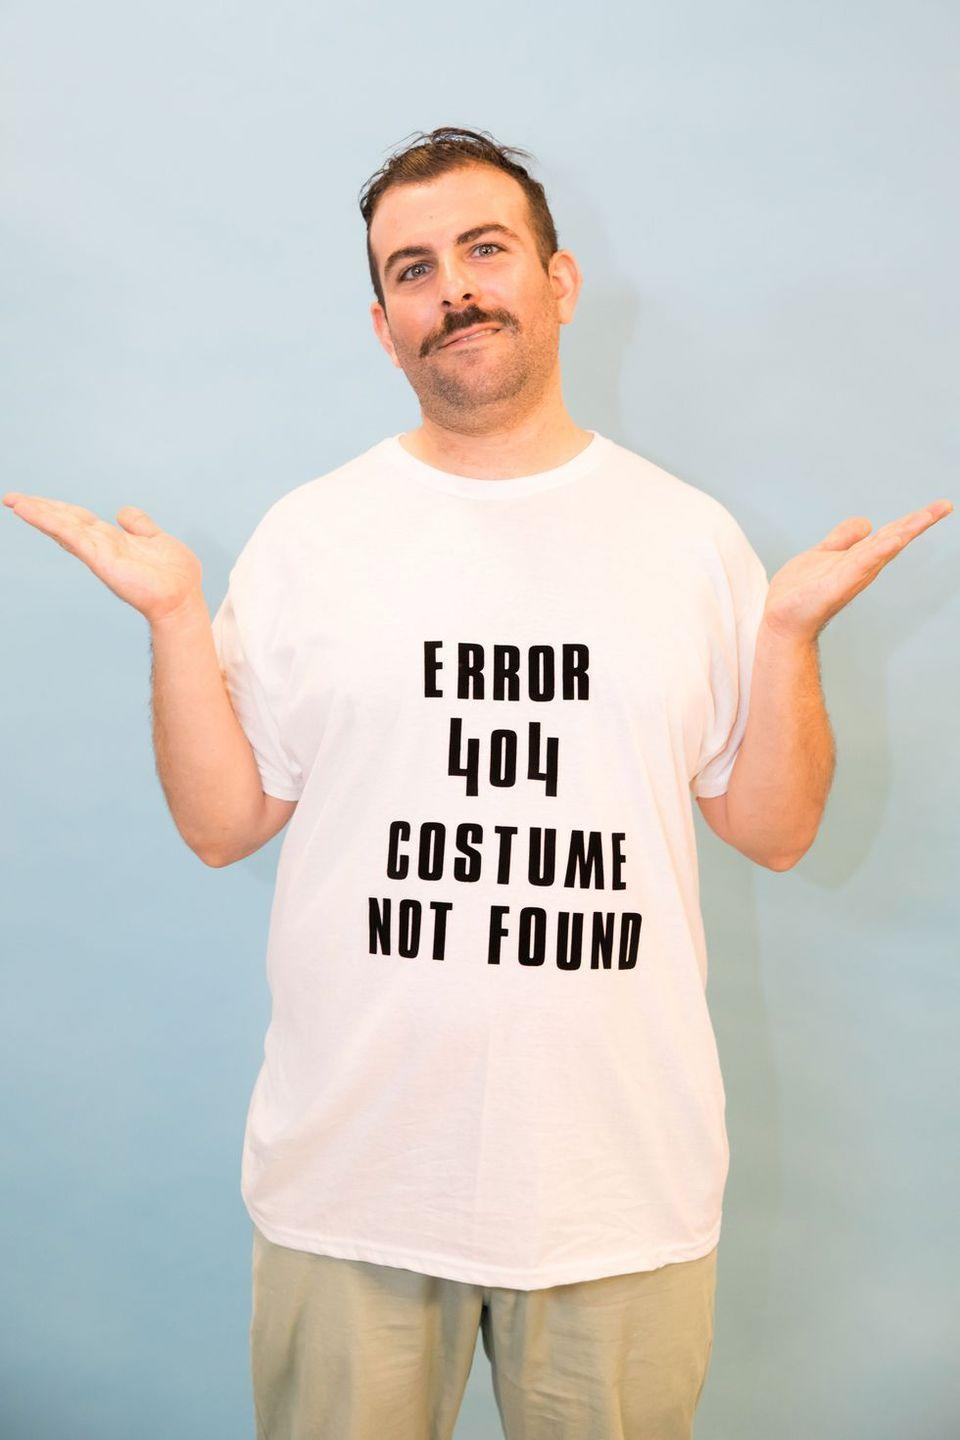 """<p>Throw together this costume seconds before you head out the door by adding iron-on letters or black stickers to a white t-shirt. </p><p><a class=""""link rapid-noclick-resp"""" href=""""https://www.amazon.com/Letters-Transfer-T-Shirt-Football-Baseball/dp/B07H97SGLF/?tag=syn-yahoo-20&ascsubtag=%5Bartid%7C10055.g.28089320%5Bsrc%7Cyahoo-us"""" rel=""""nofollow noopener"""" target=""""_blank"""" data-ylk=""""slk:SHOP IRON-ON LETTERS"""">SHOP IRON-ON LETTERS</a> </p>"""